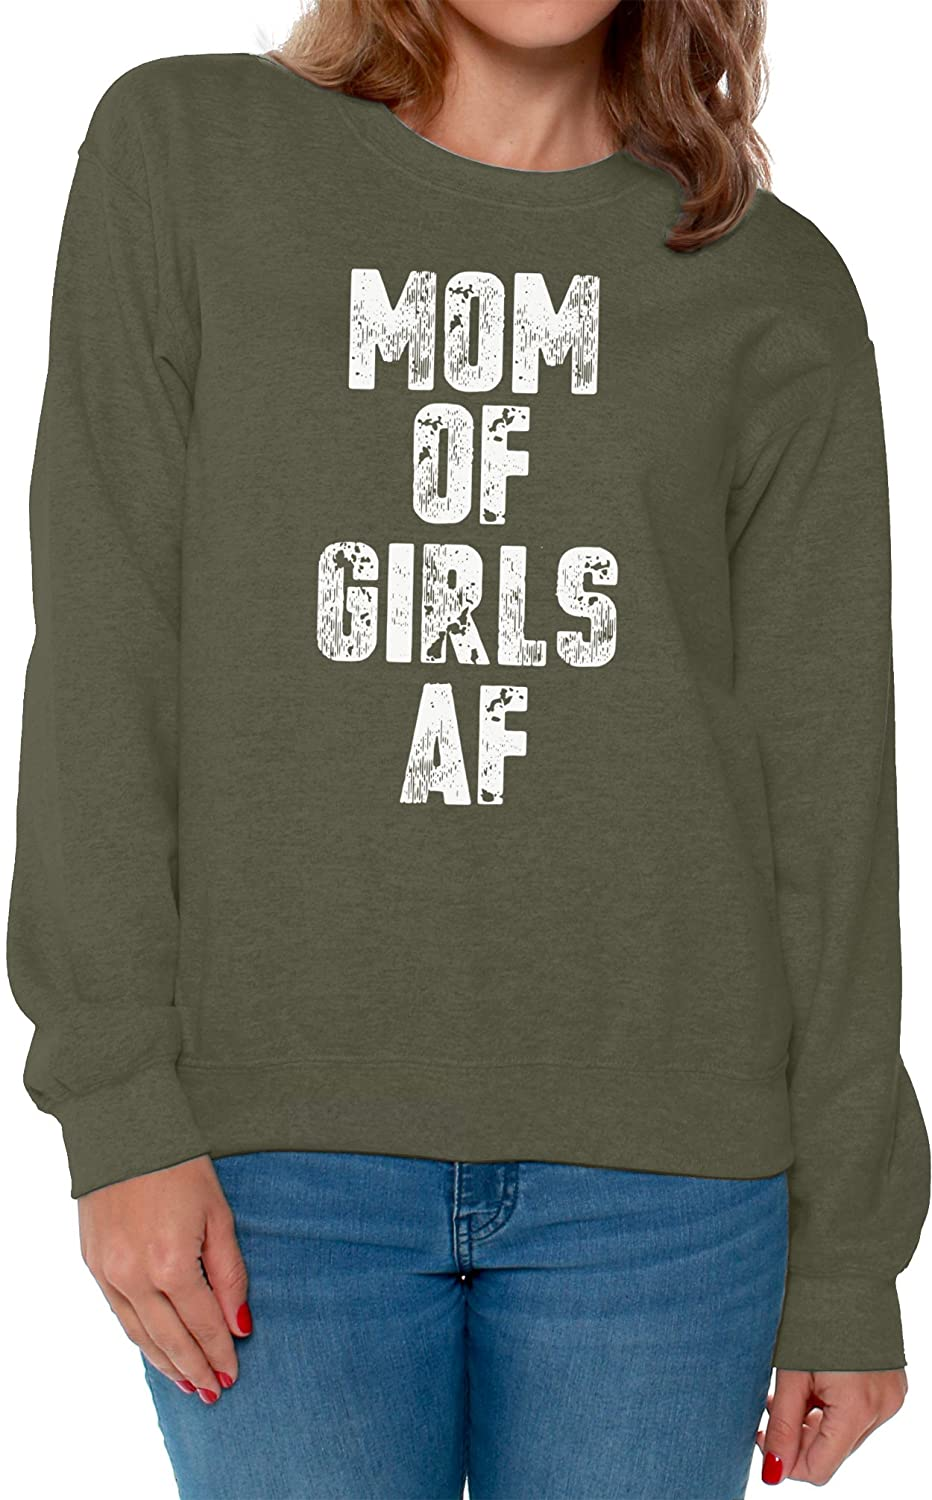 Awkward Styles Womens Mom of Girls AF Sweatshirt Crewneck Mom of Girls Gifts for Mothers Day